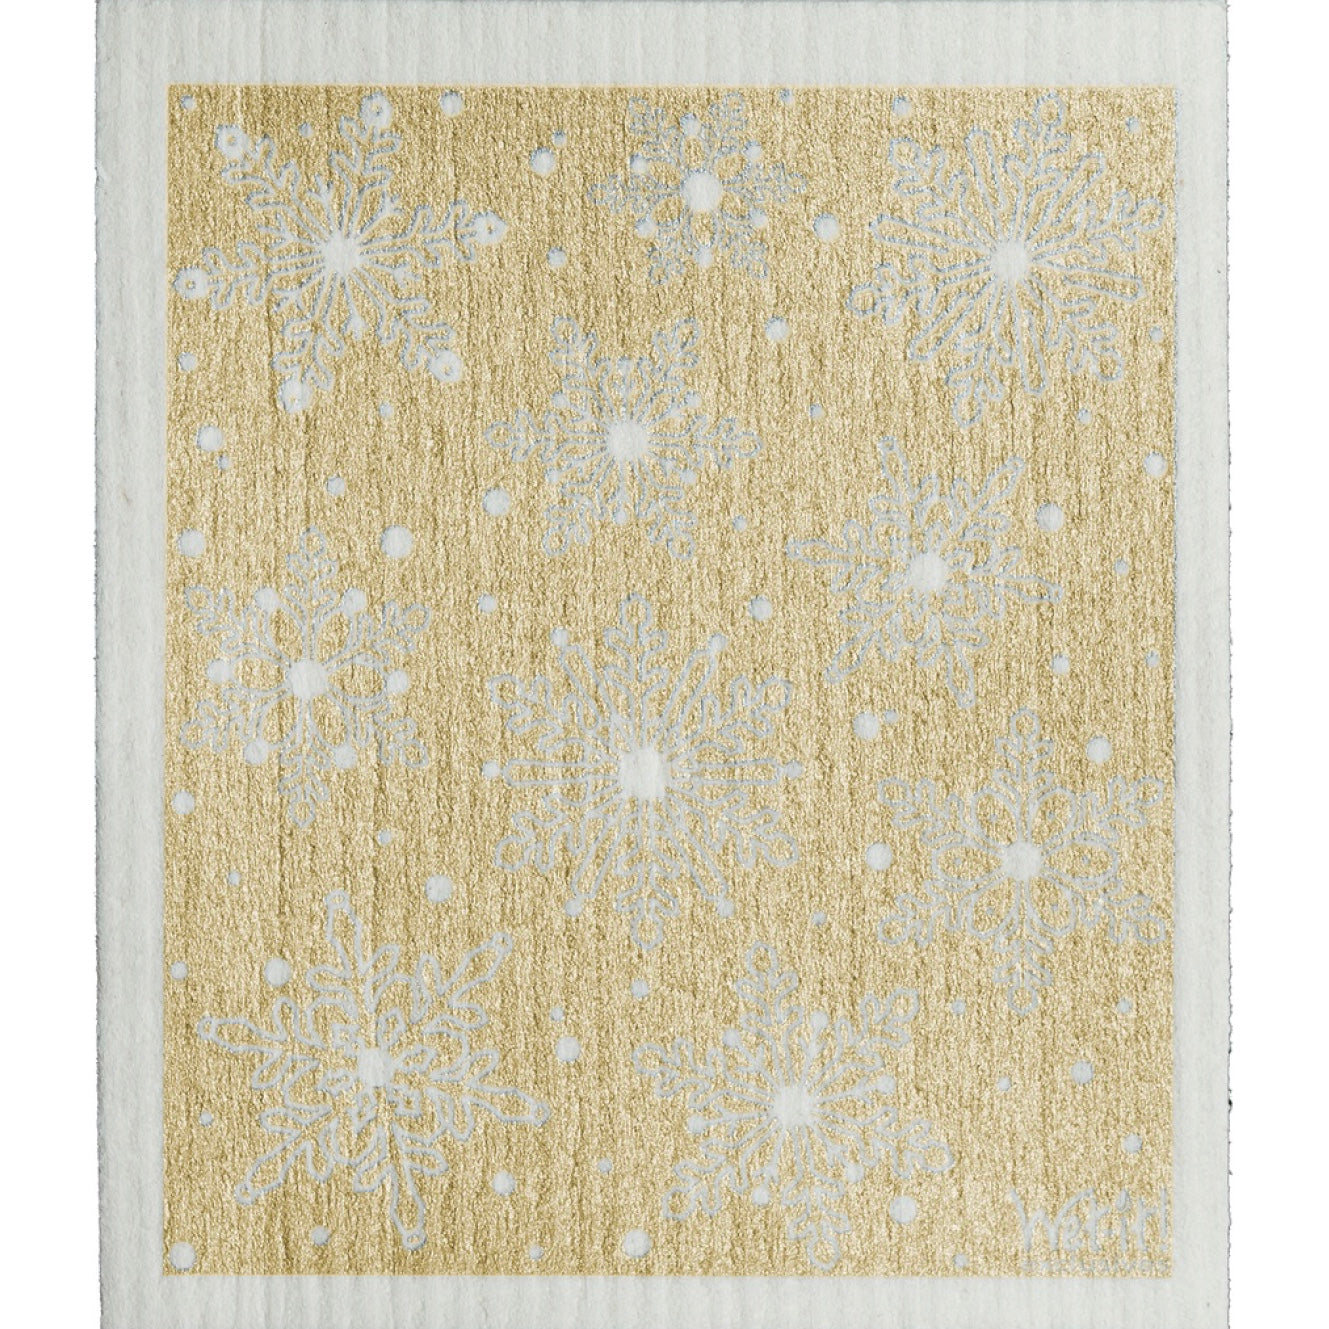 Wet it! Winter Day Metallic Gold Swedish Cloth | Putti Fine Furnishings